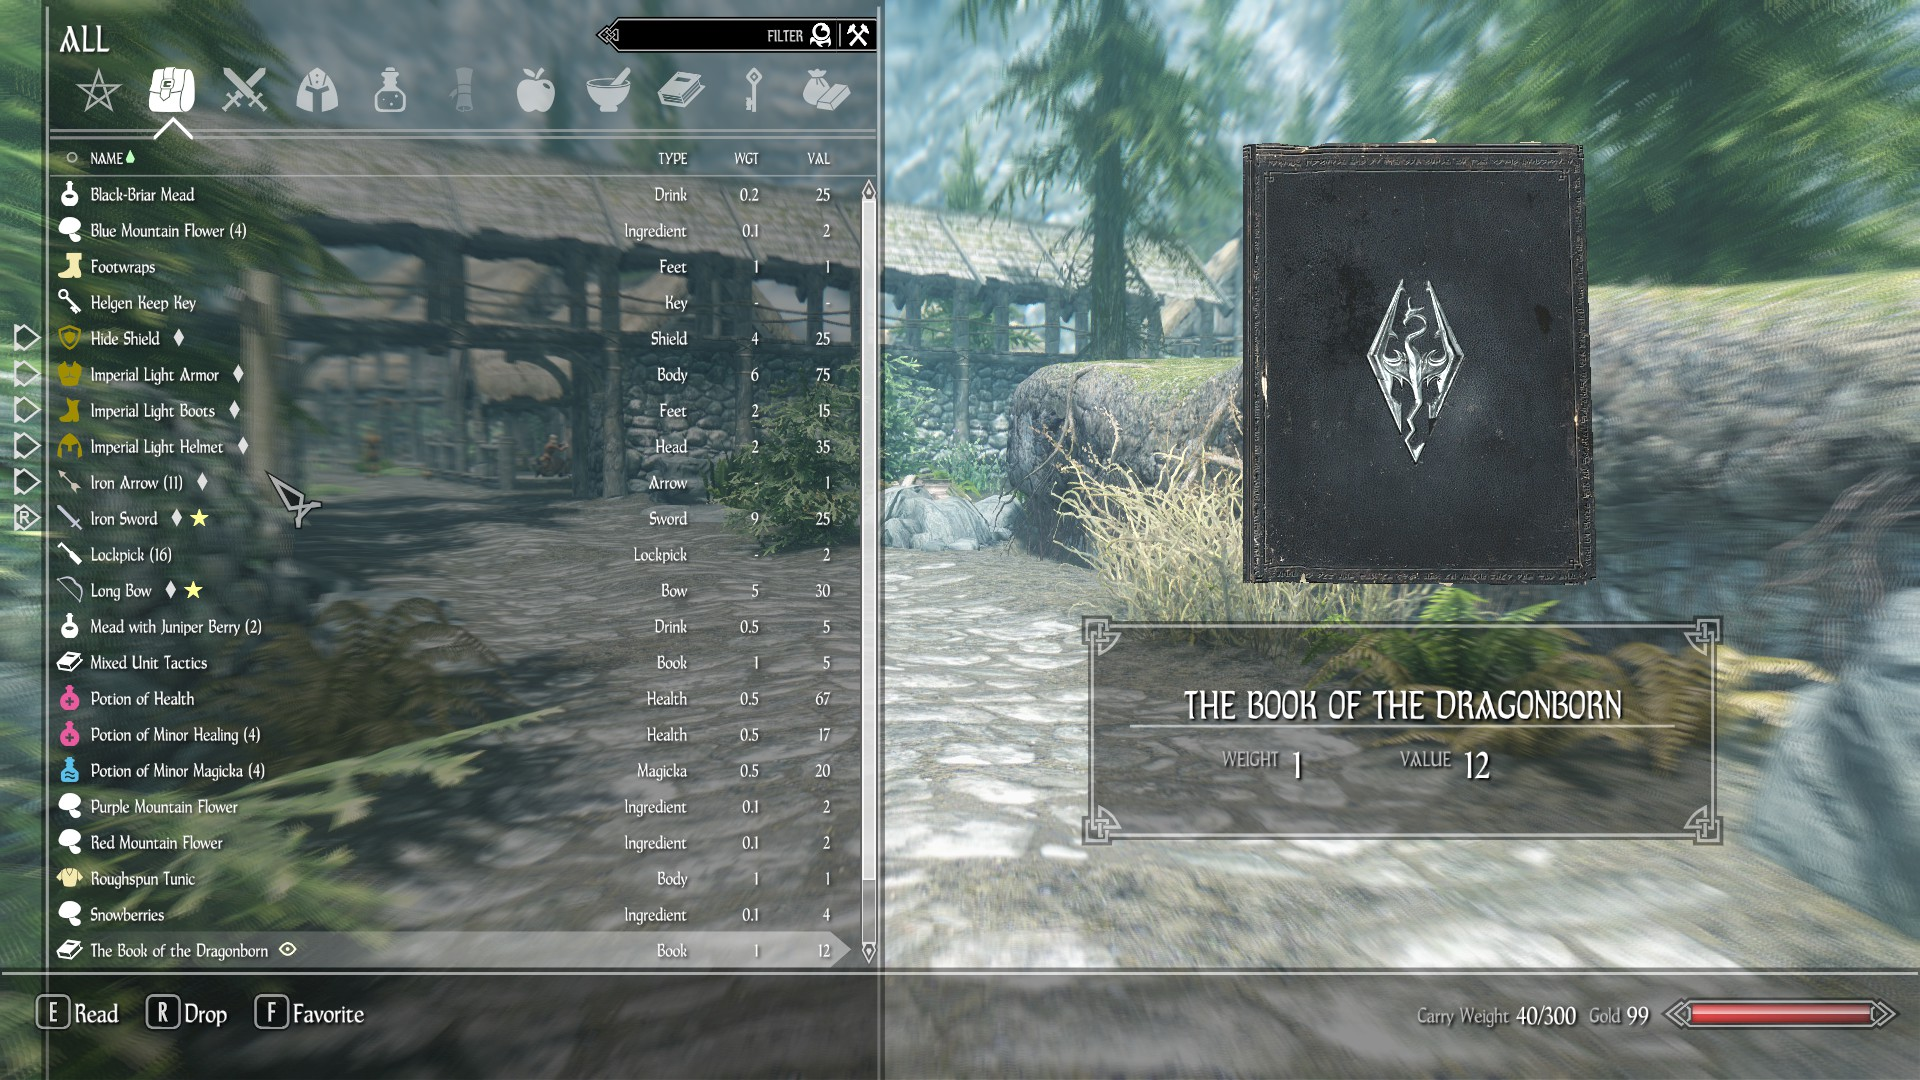 Skyrim Mods - Part 2 - Skyrim UI Mods - The TwentySidedBlog